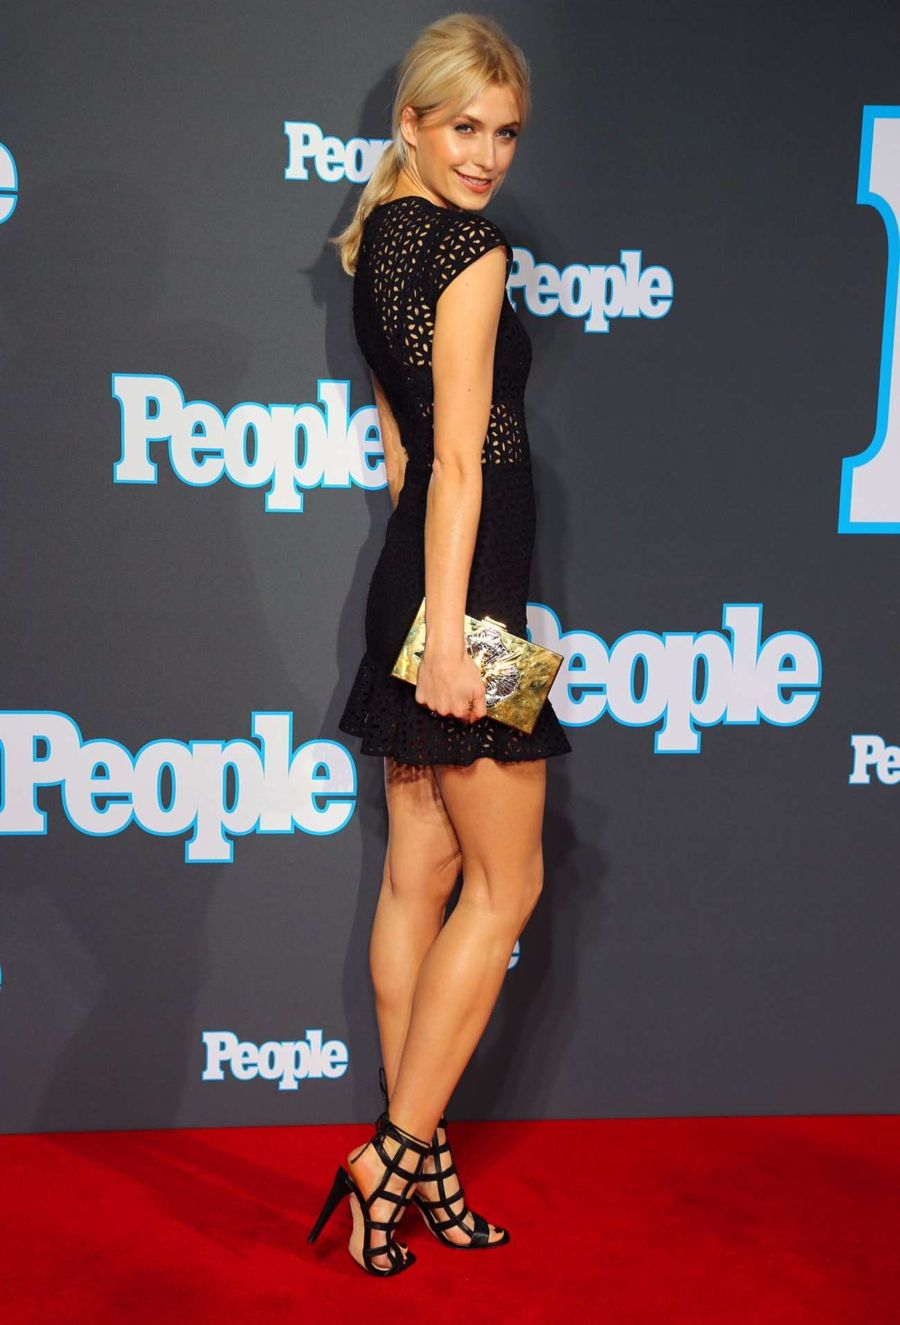 Lena Gercke - People Magazine Launch Party in Berlin